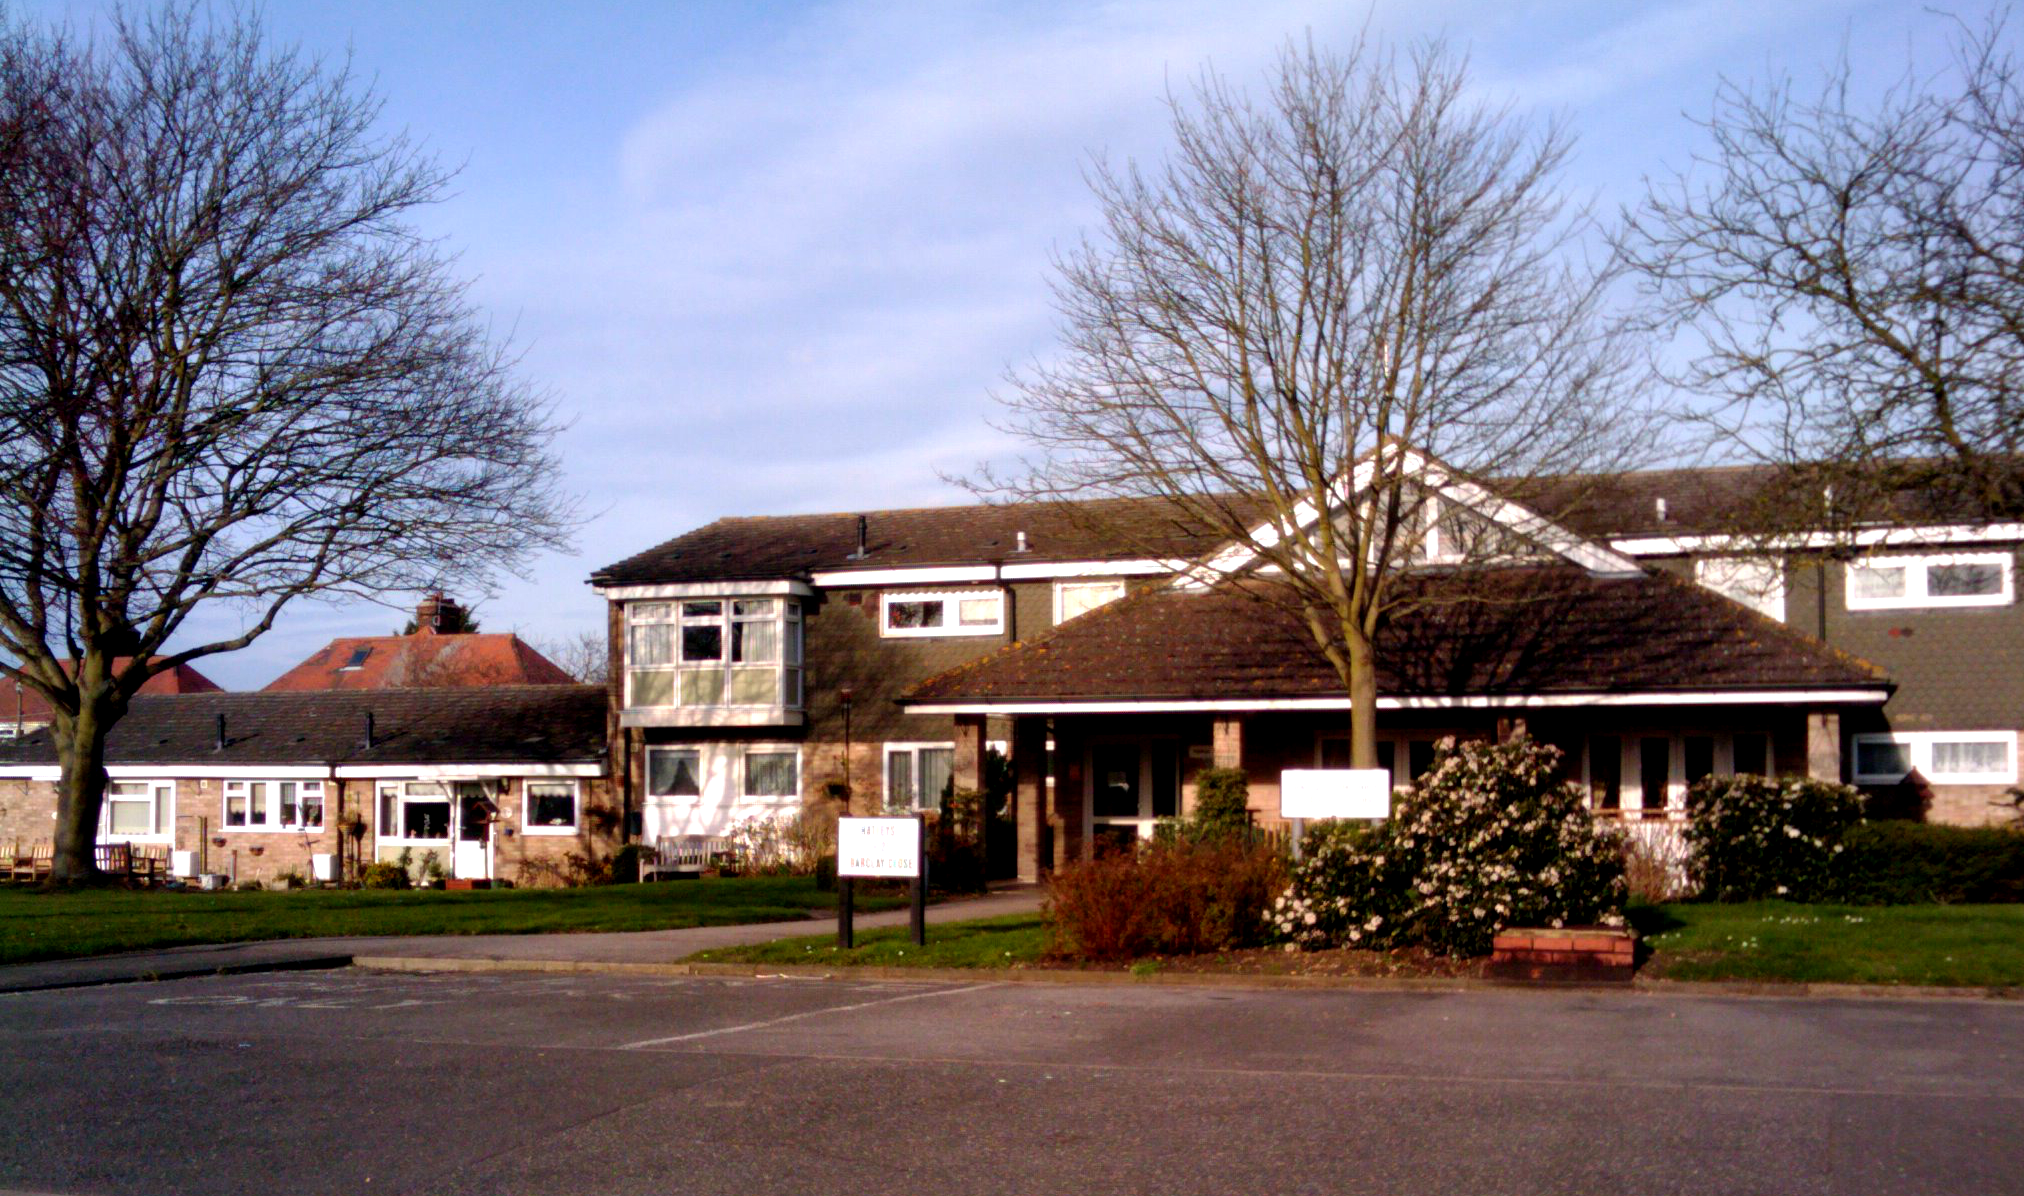 Hatleys on Barclays Close. Note the bungalows to the left with small ...